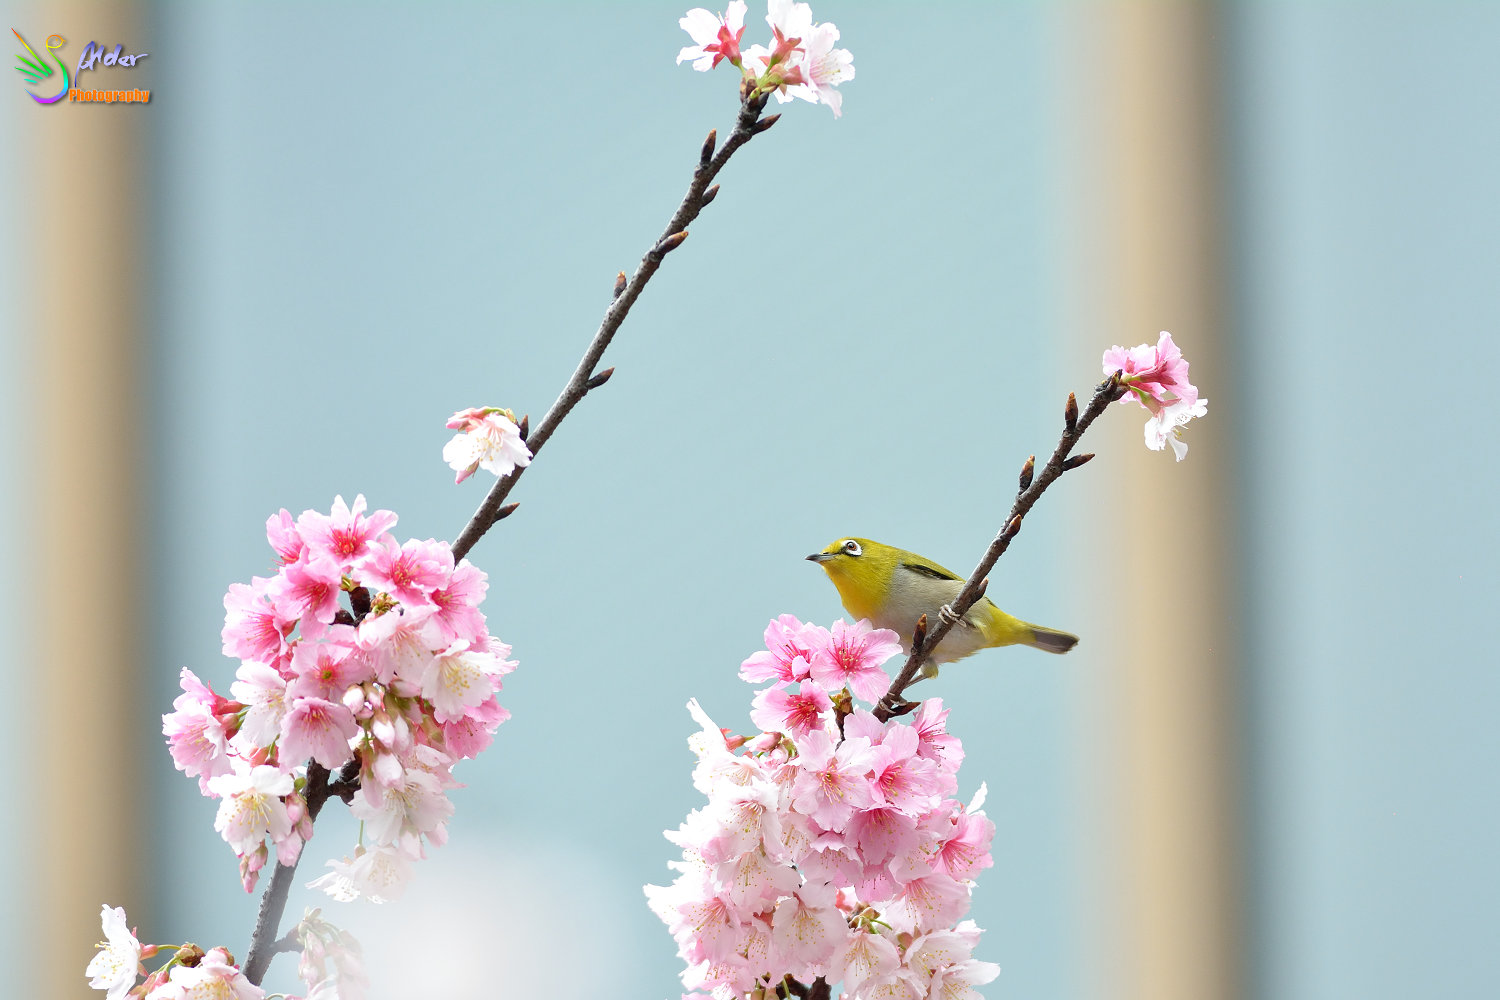 Sakura_White-eye_6400